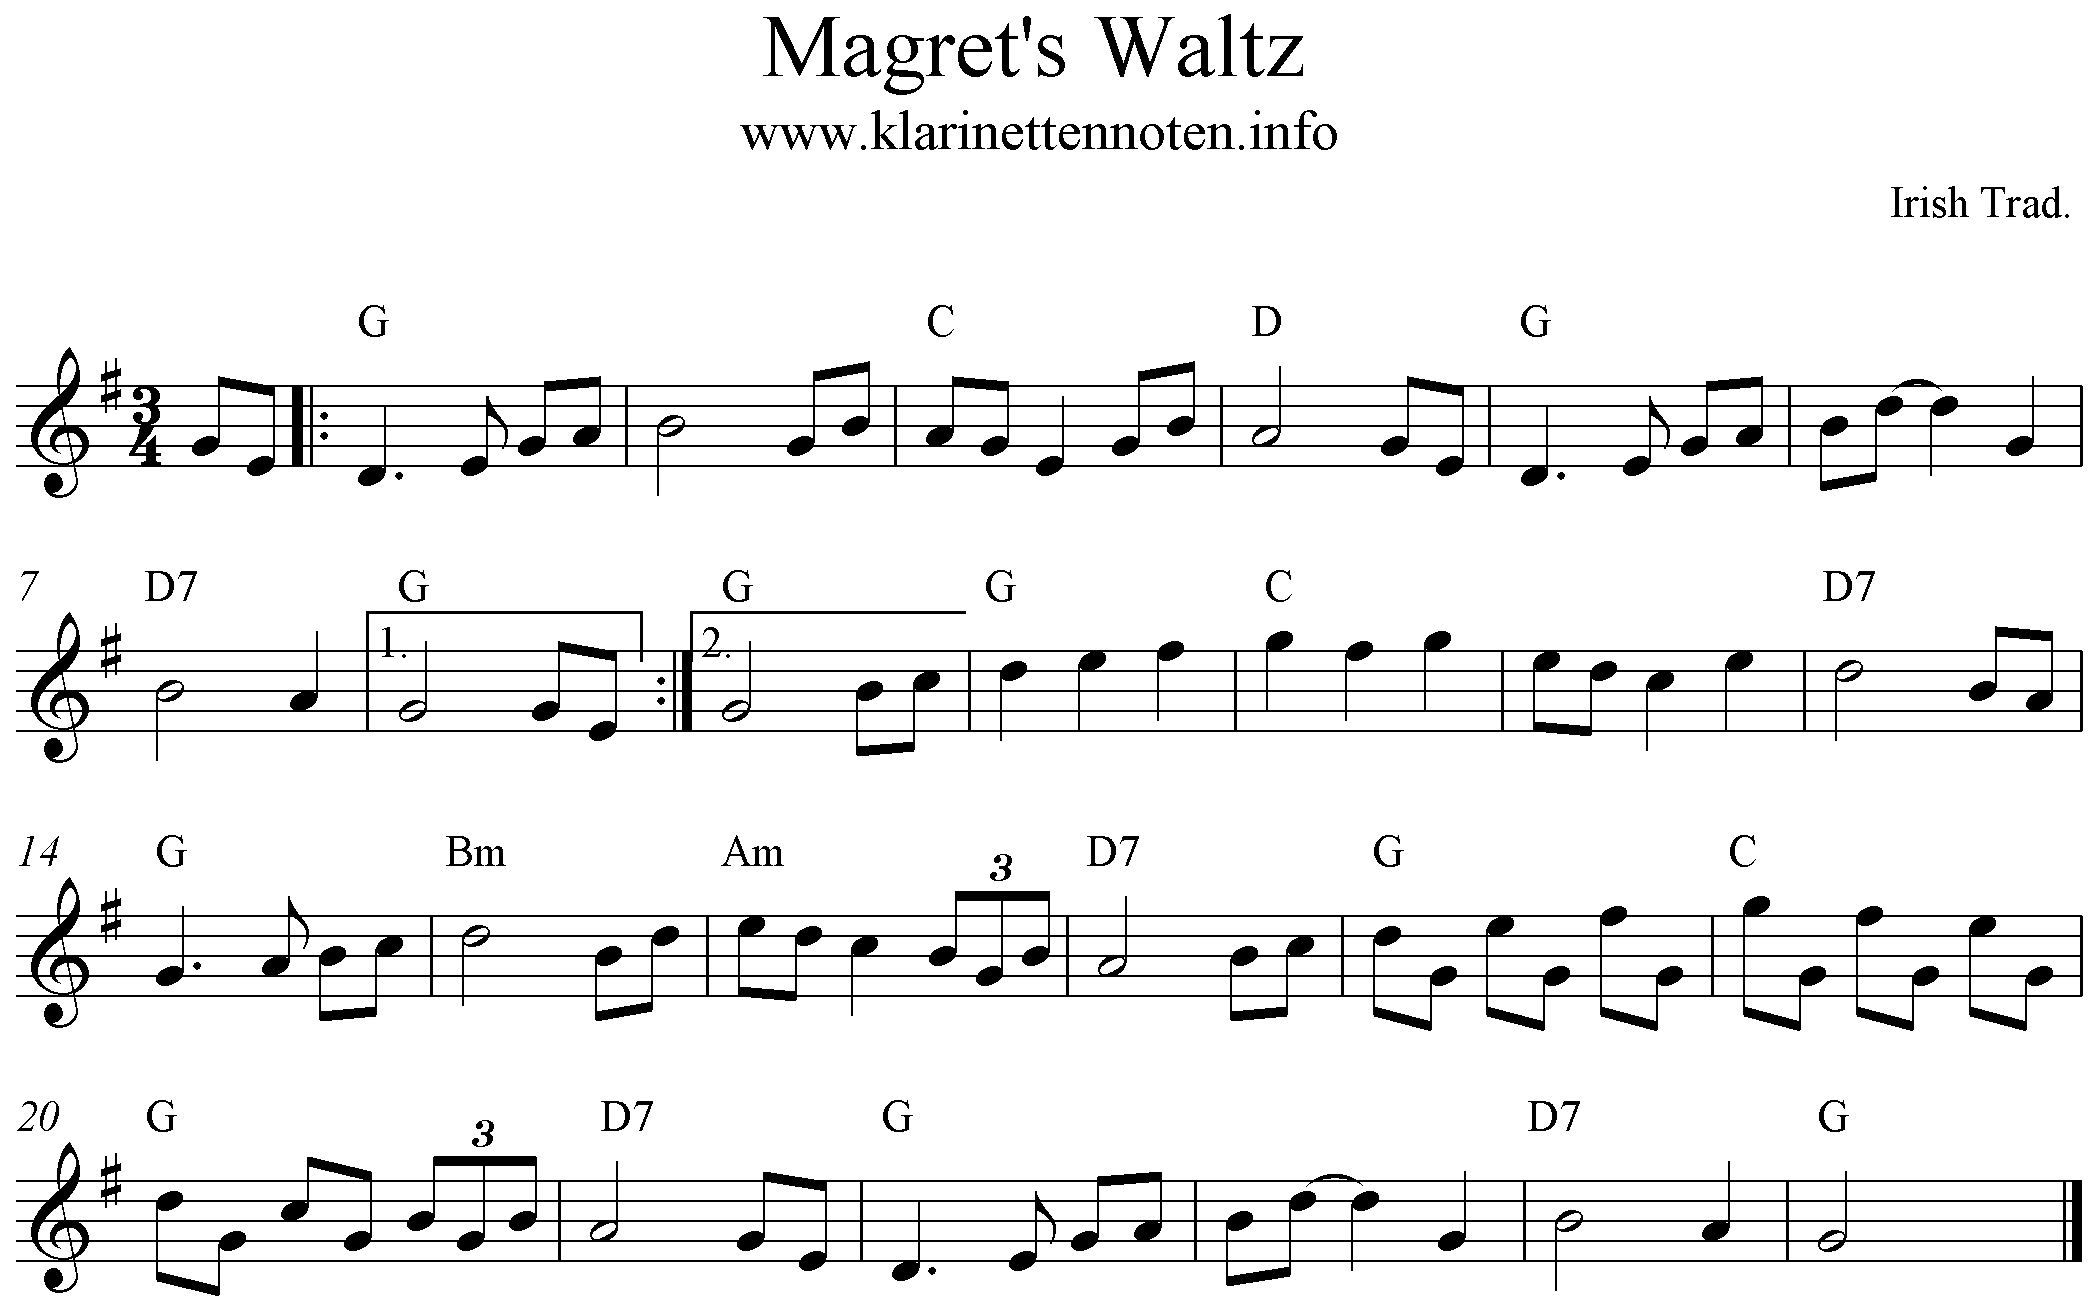 Magret's Waltz, G-Major